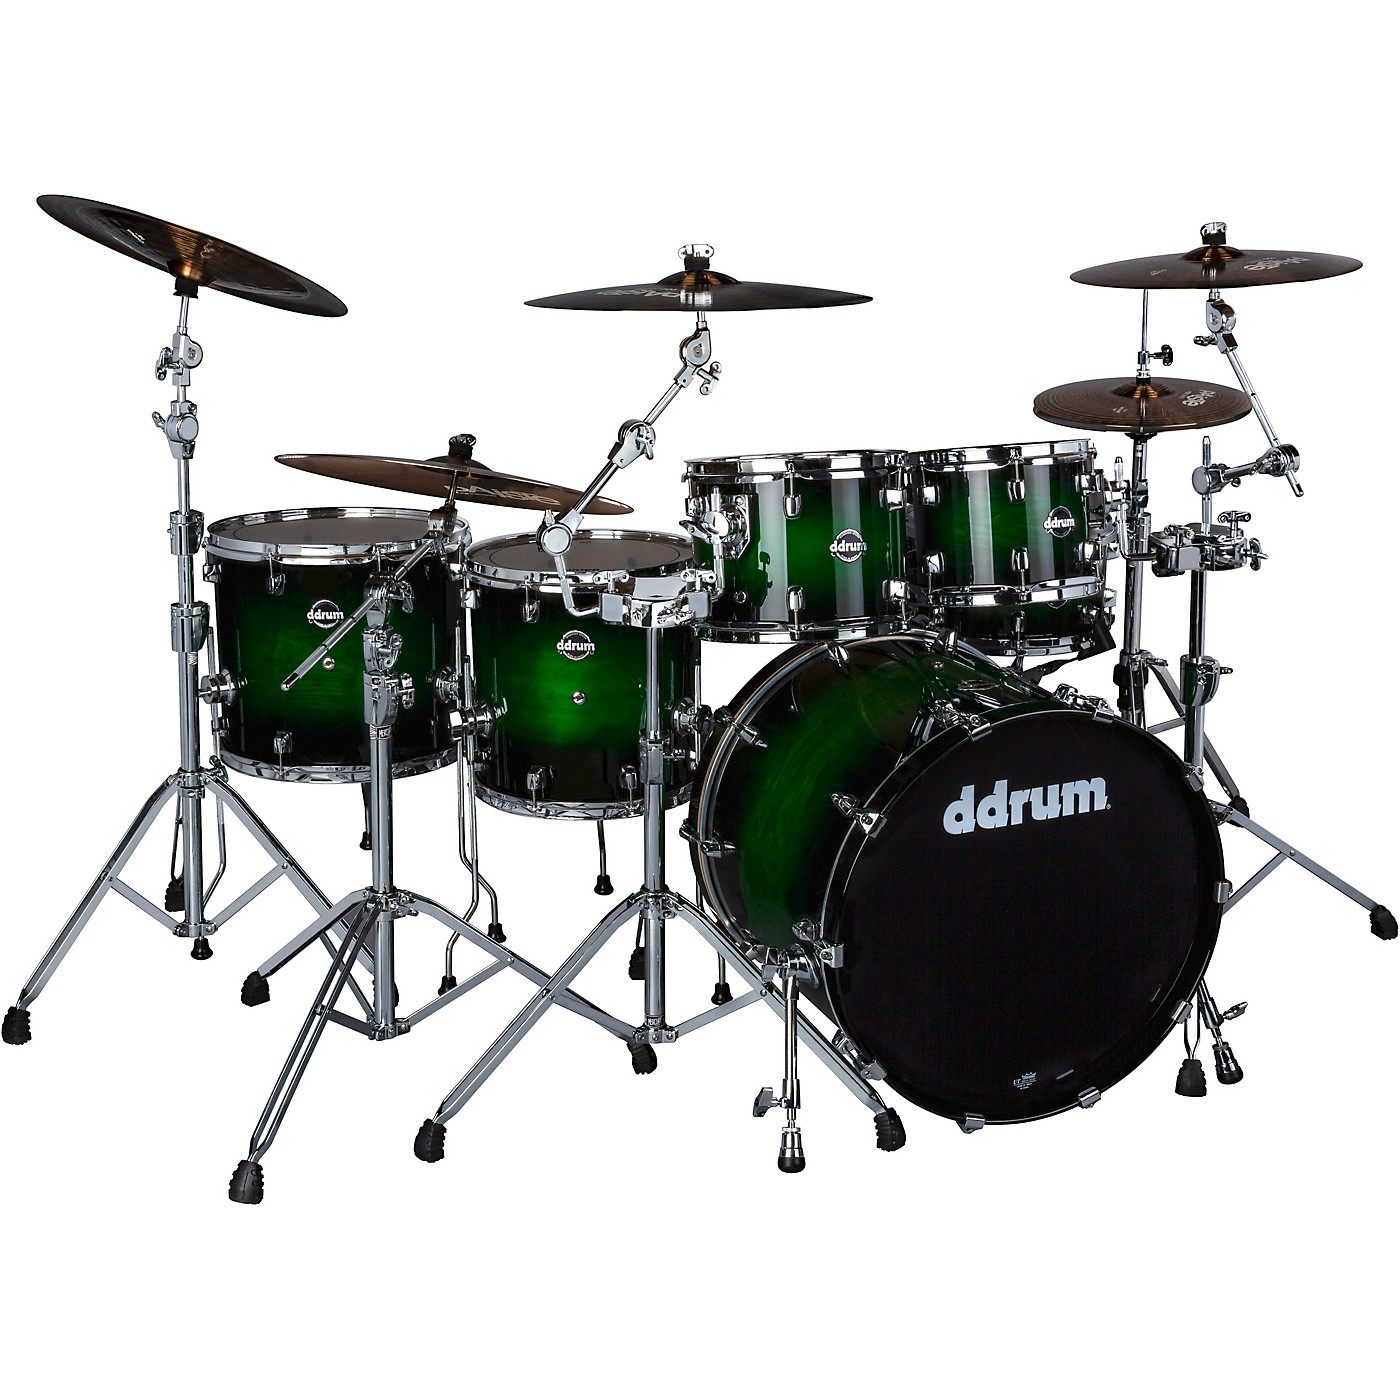 ddrum Dominion Birch 6-piece Shell Pack with Ash Veneer thumbnail